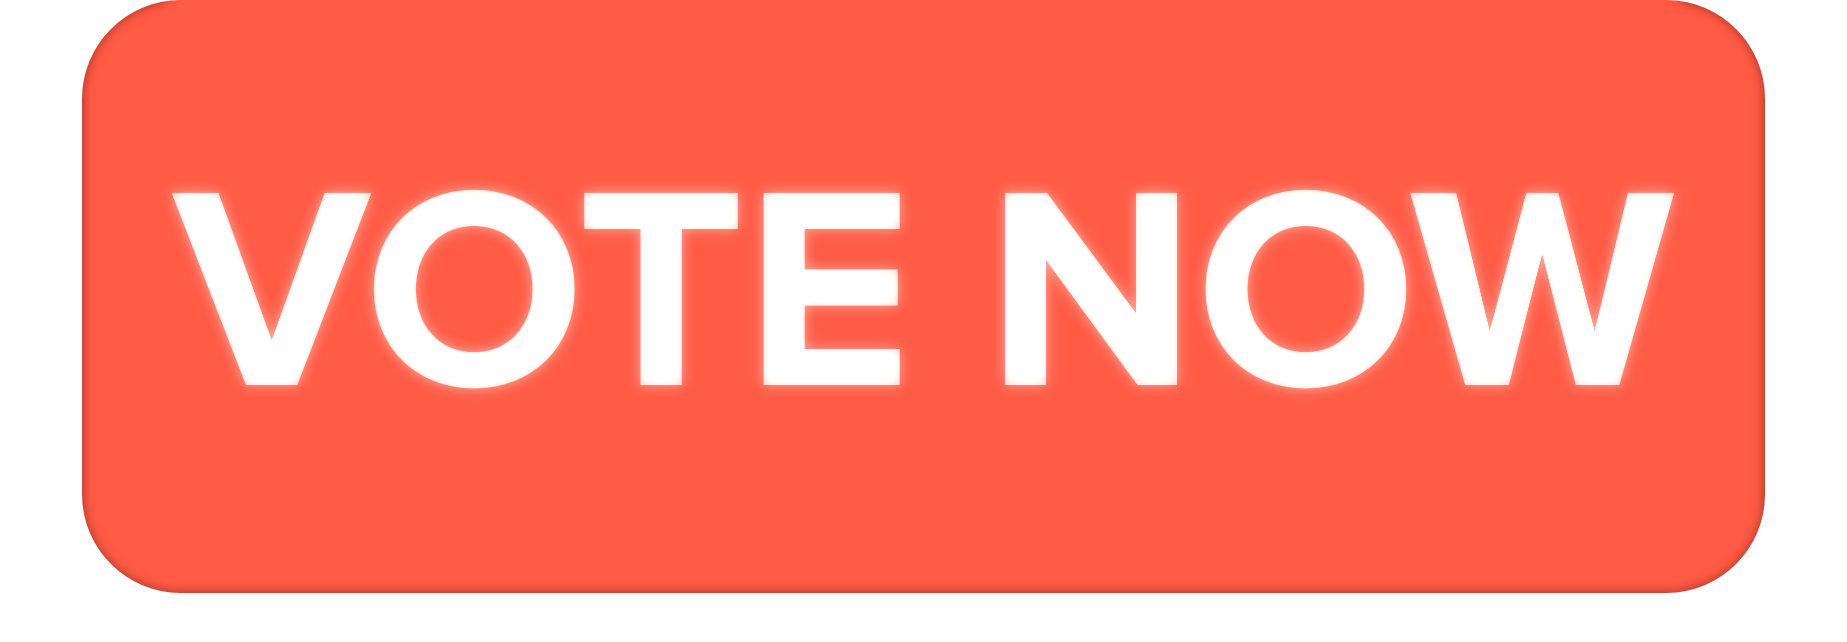 vOTE-nOW-bUTTON.png